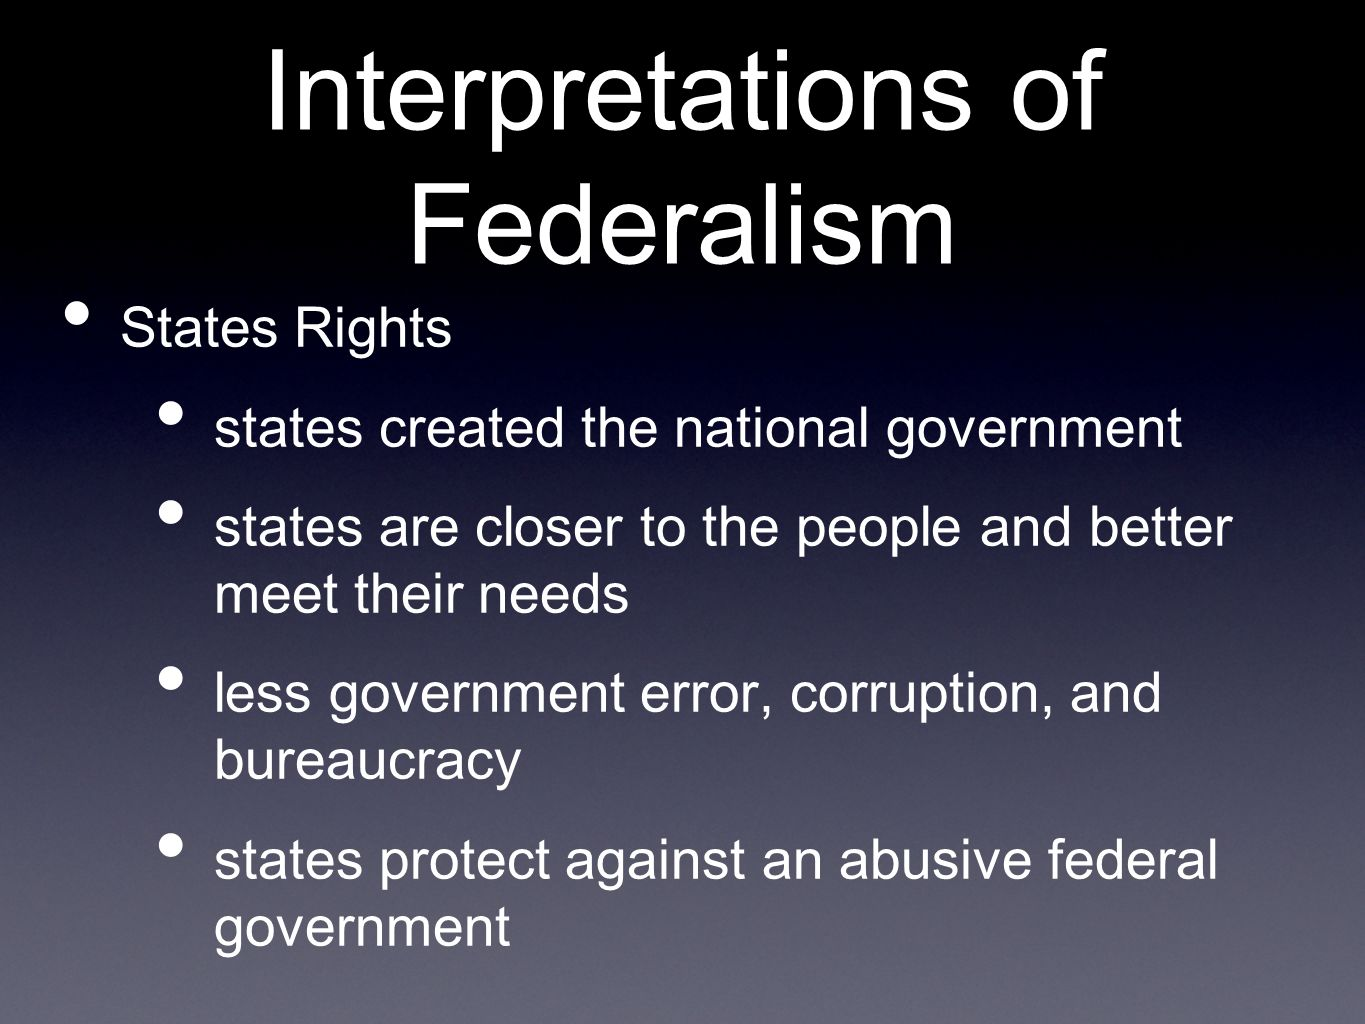 Interpretations of Federalism States Rights states created the national government states are closer to the people and better meet their needs less government error, corruption, and bureaucracy states protect against an abusive federal government